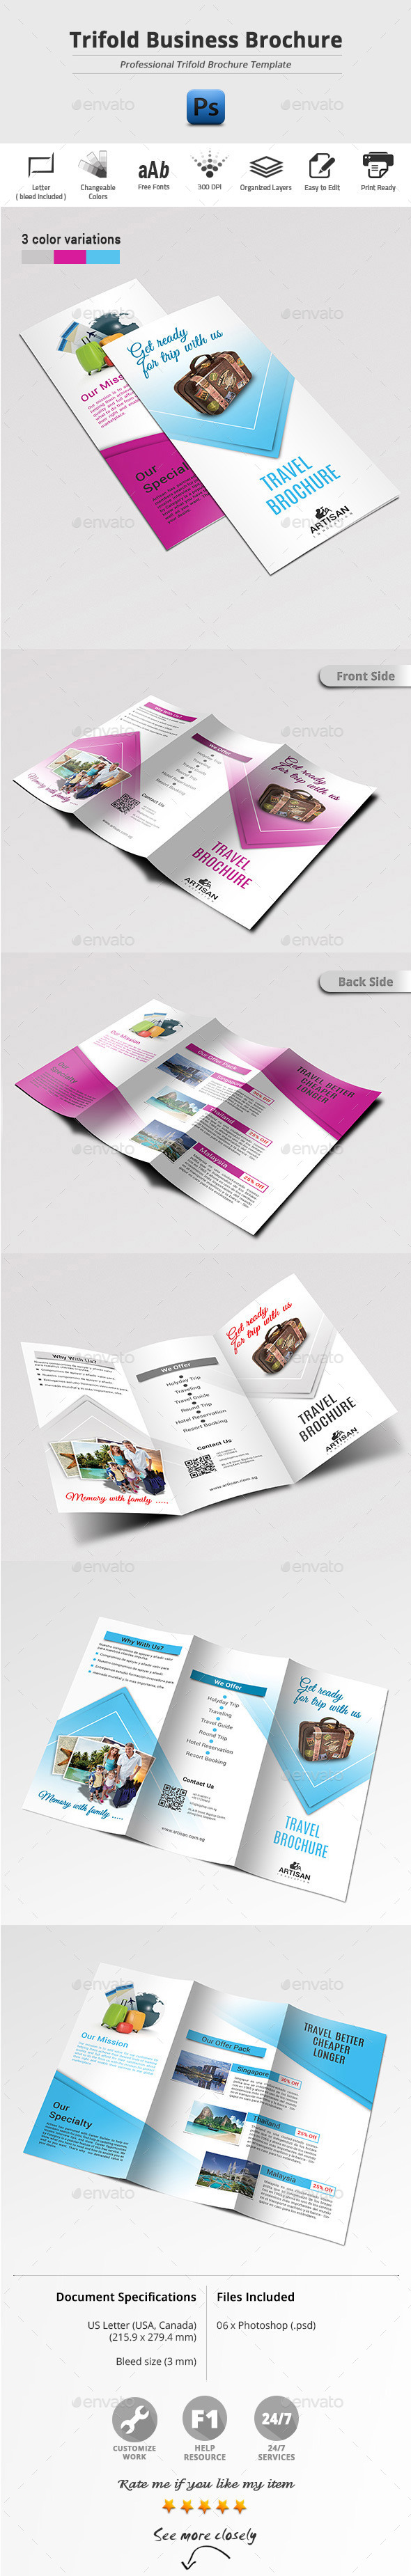 GraphicRiver Trifold Business Brochure 11548373